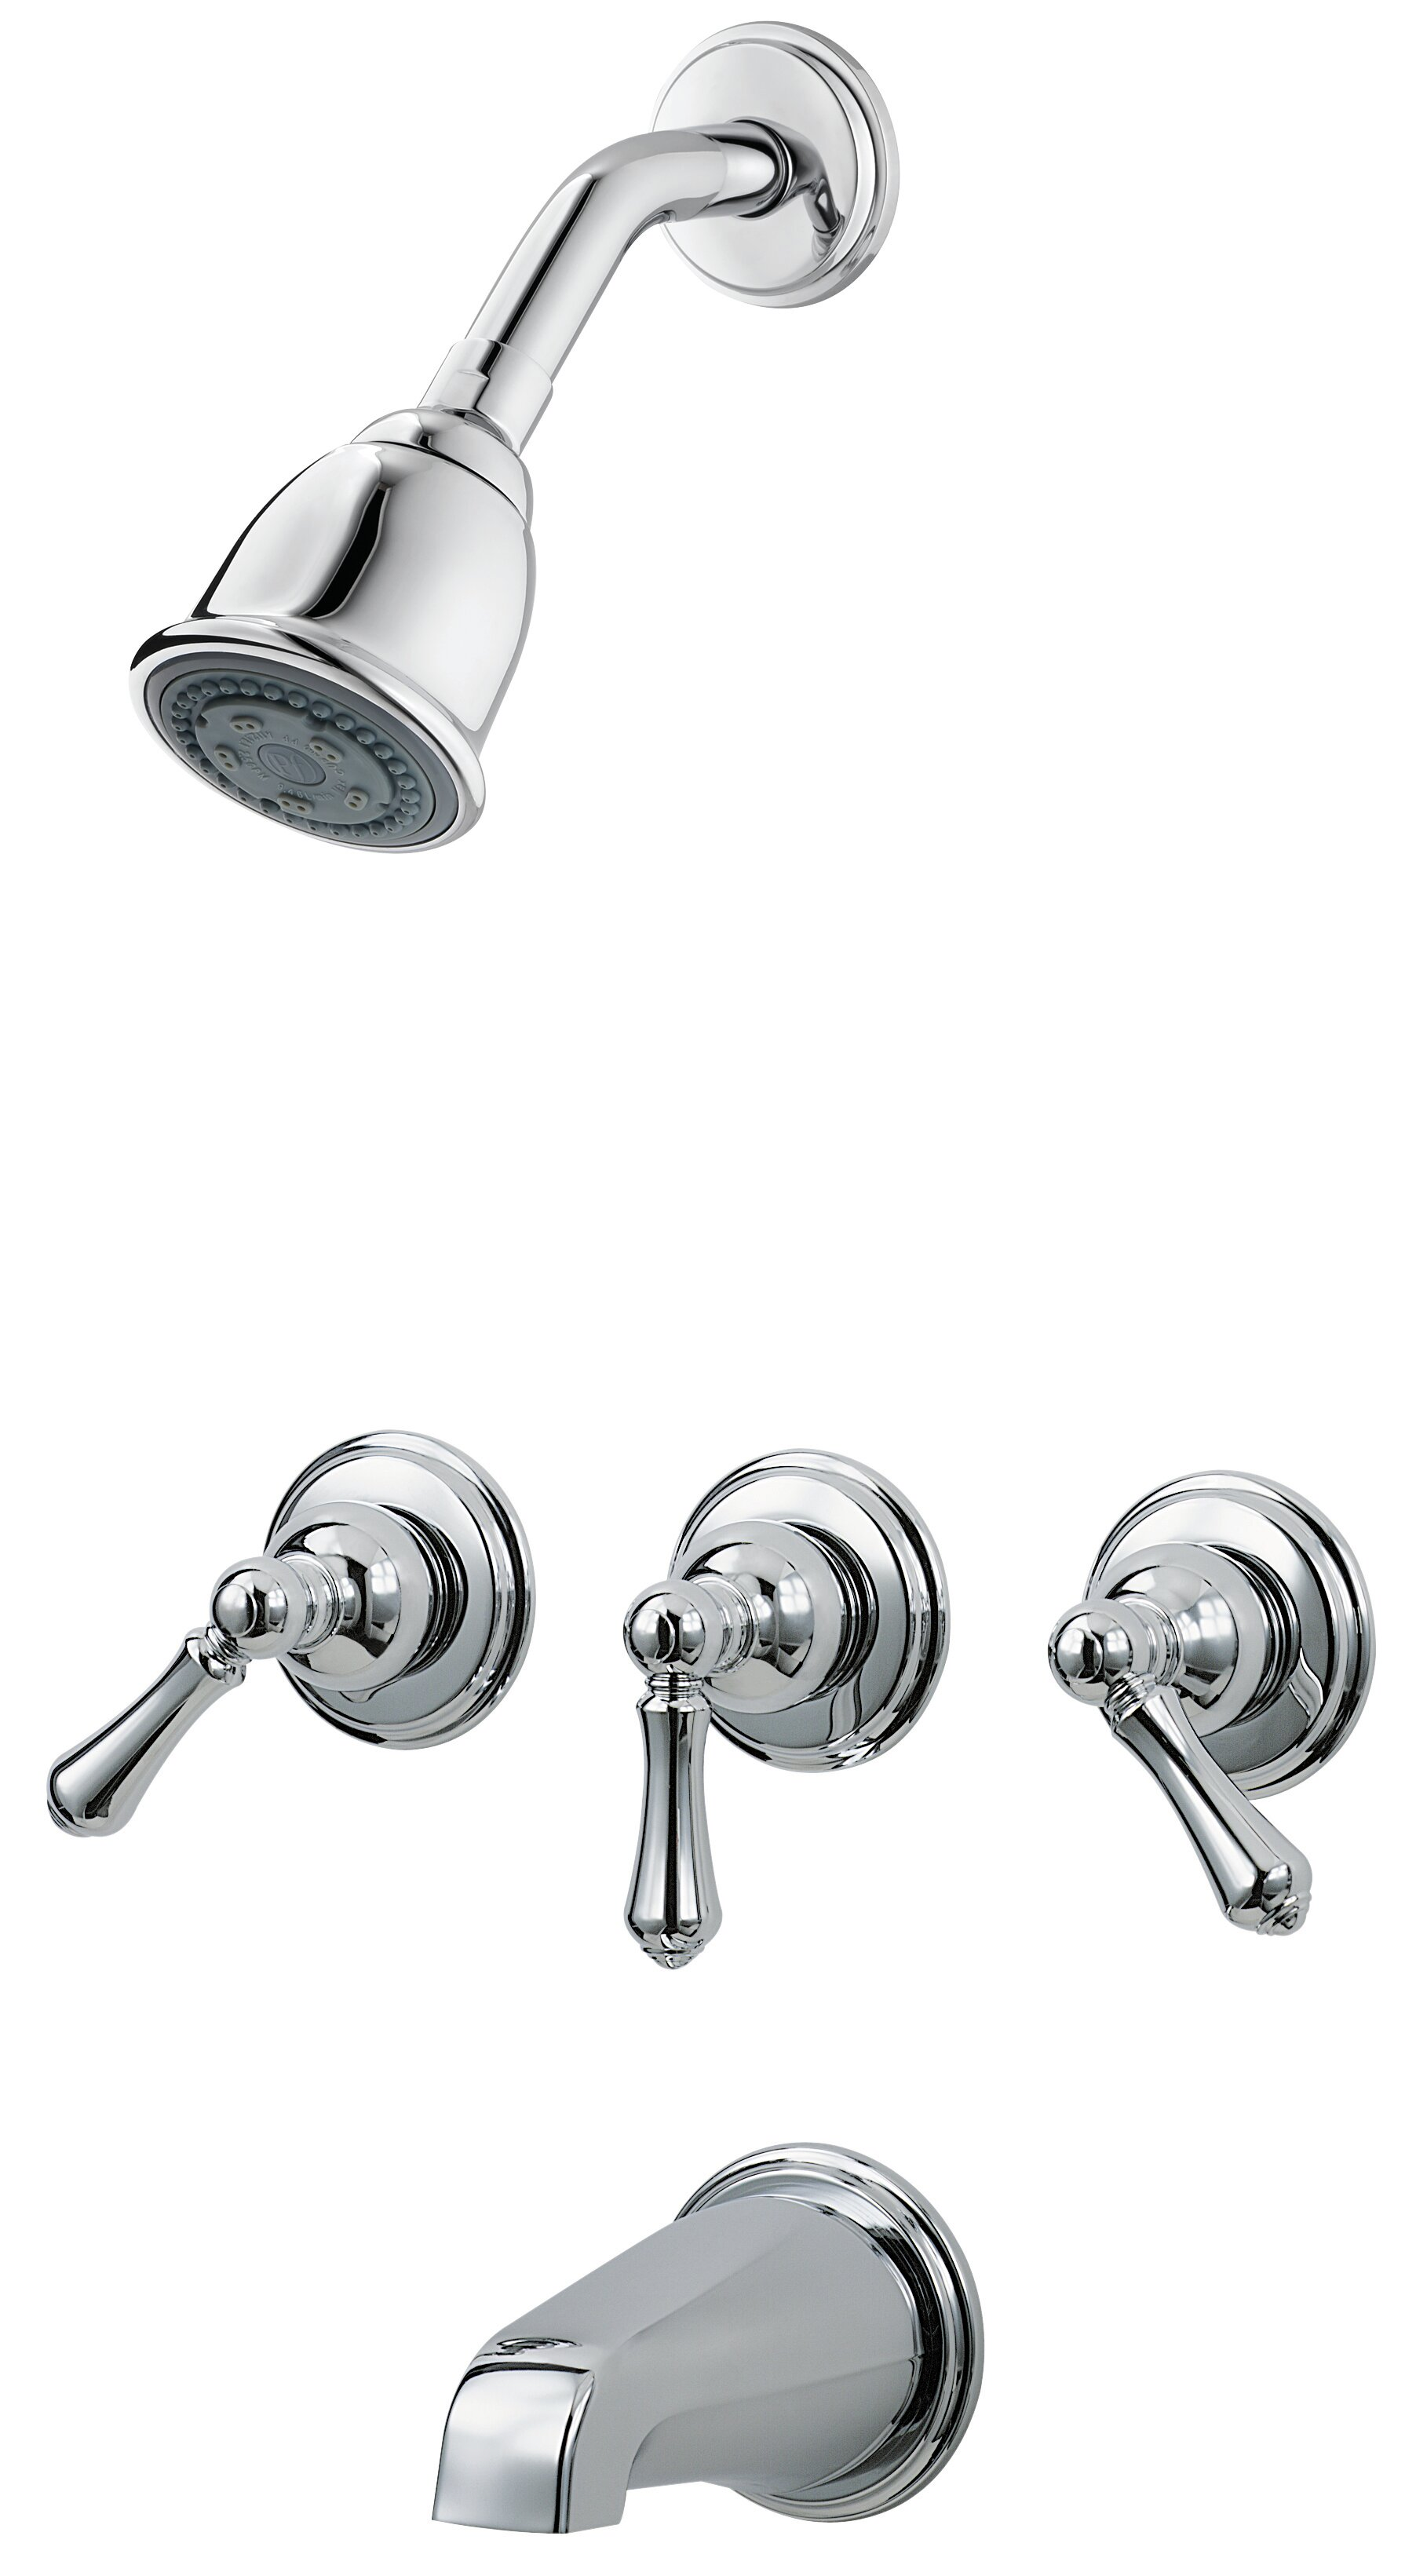 Picture of: Pfister 3 Handle Thermostatic Tub And Shower Faucet With Trim Reviews Wayfair Ca